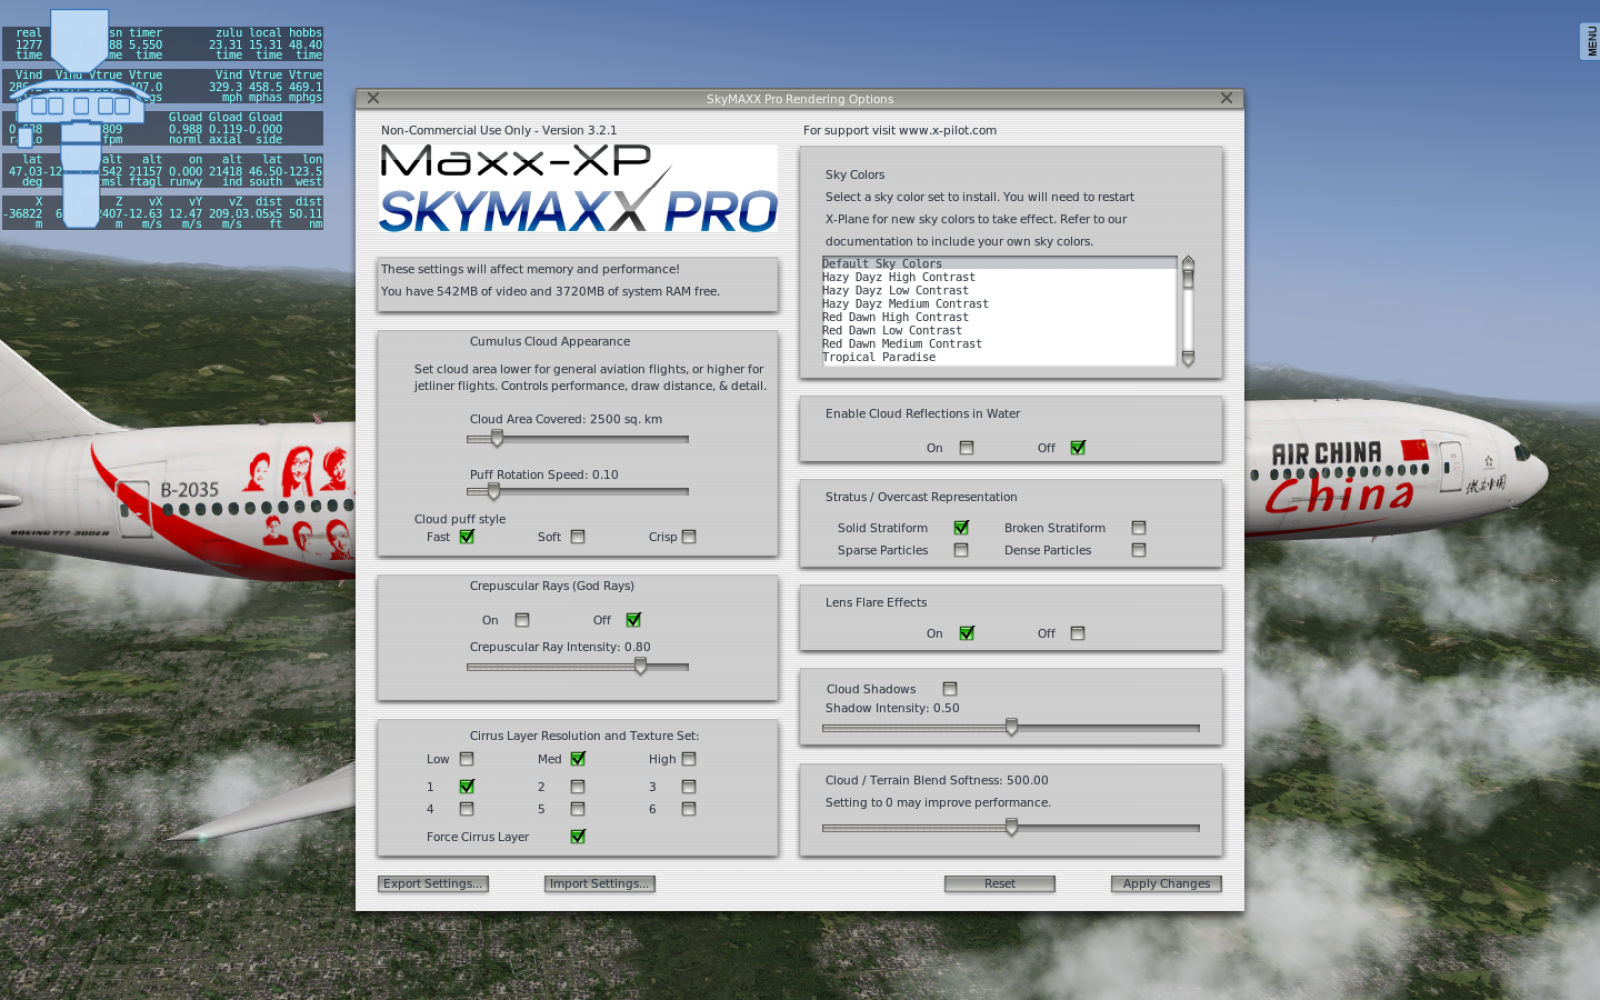 Advice needed on new Mac capable of handling X-Plane into the future